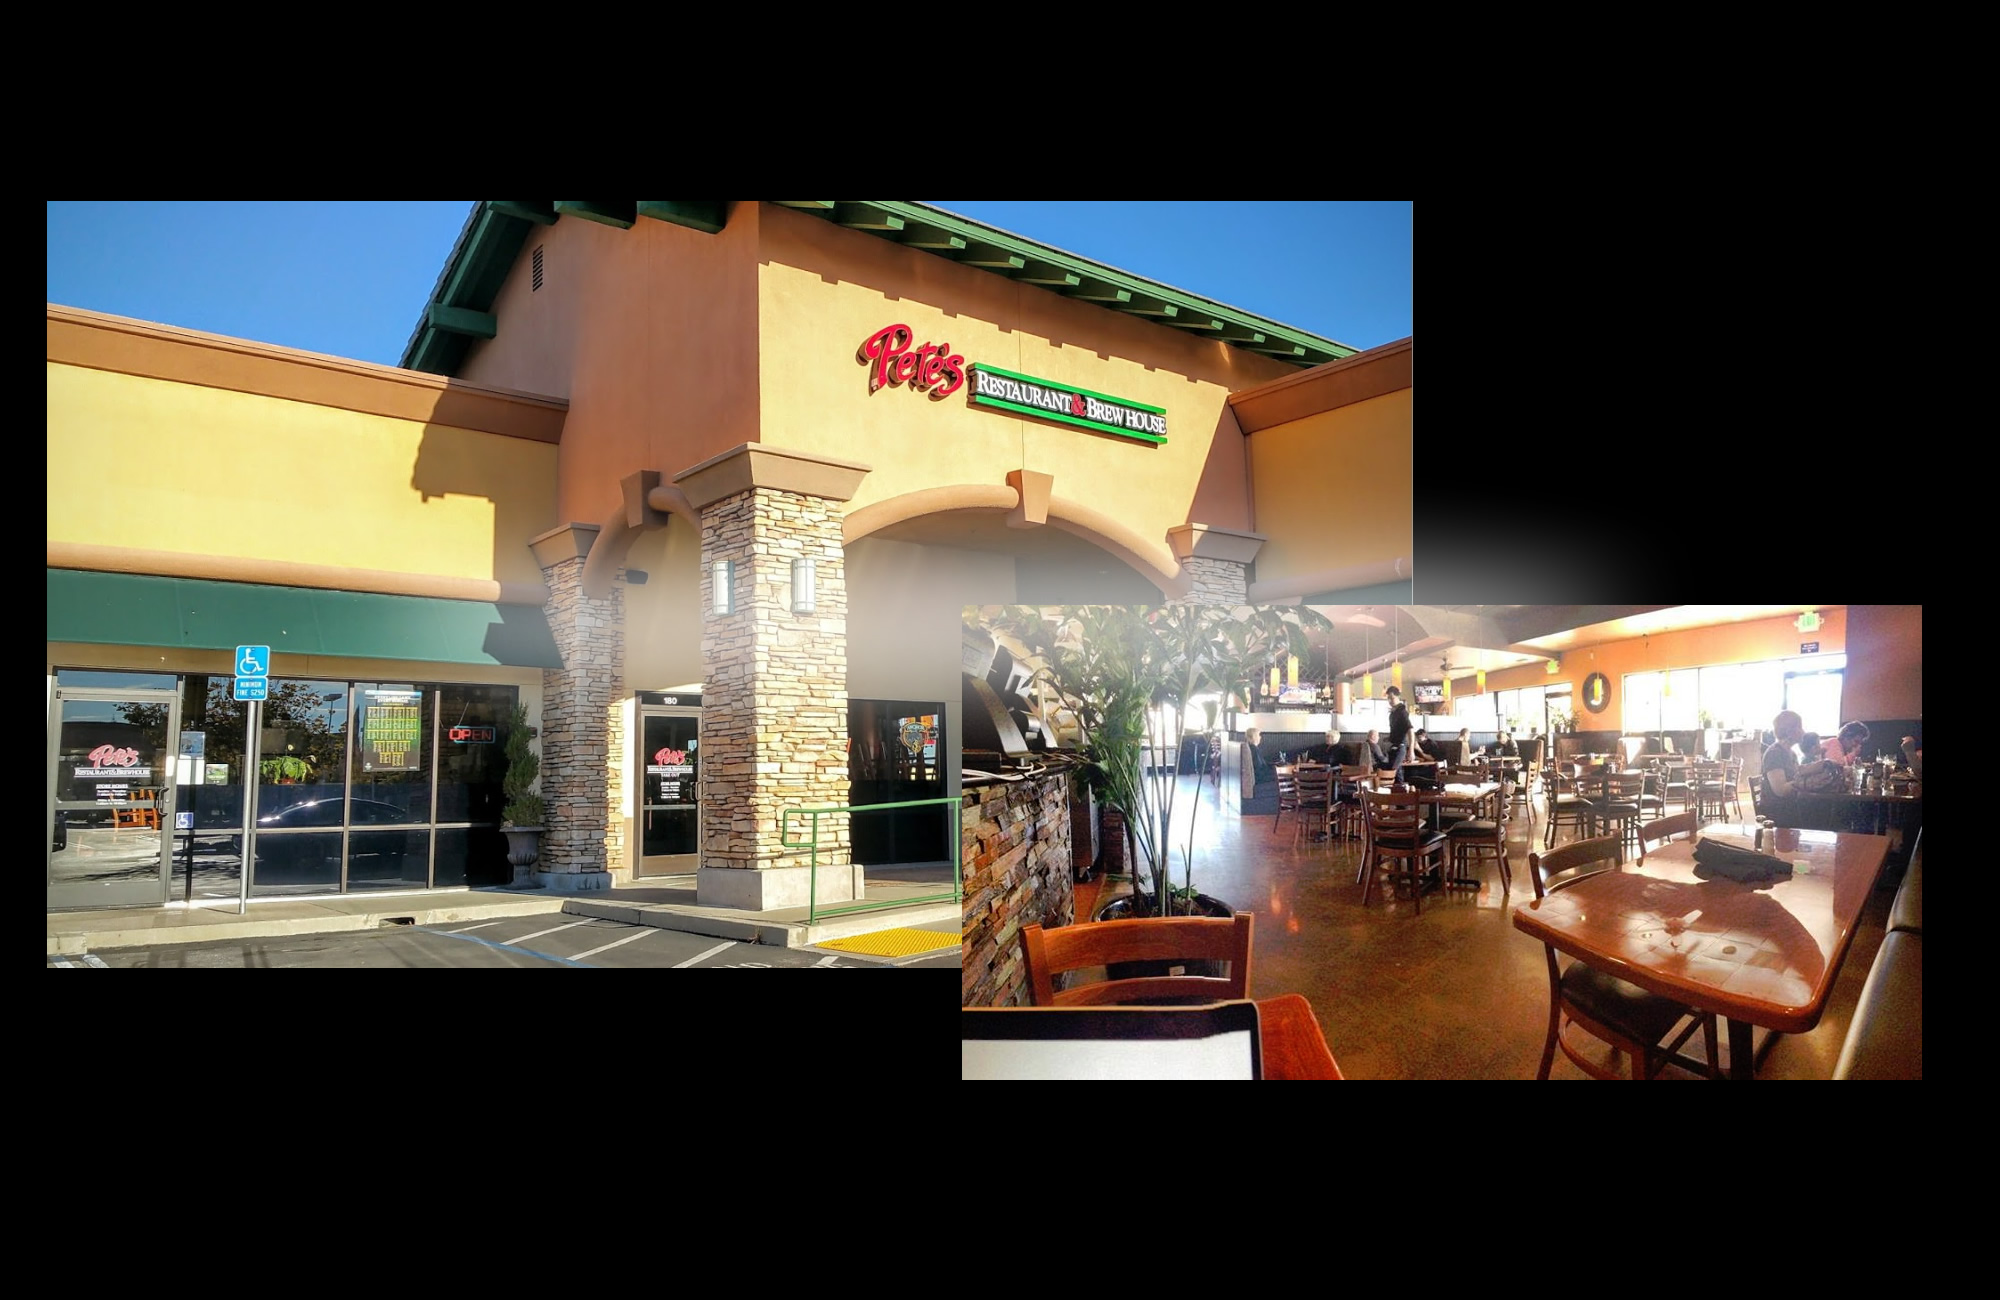 Pete S Restaurant And Brewhouse El Dorado Hills